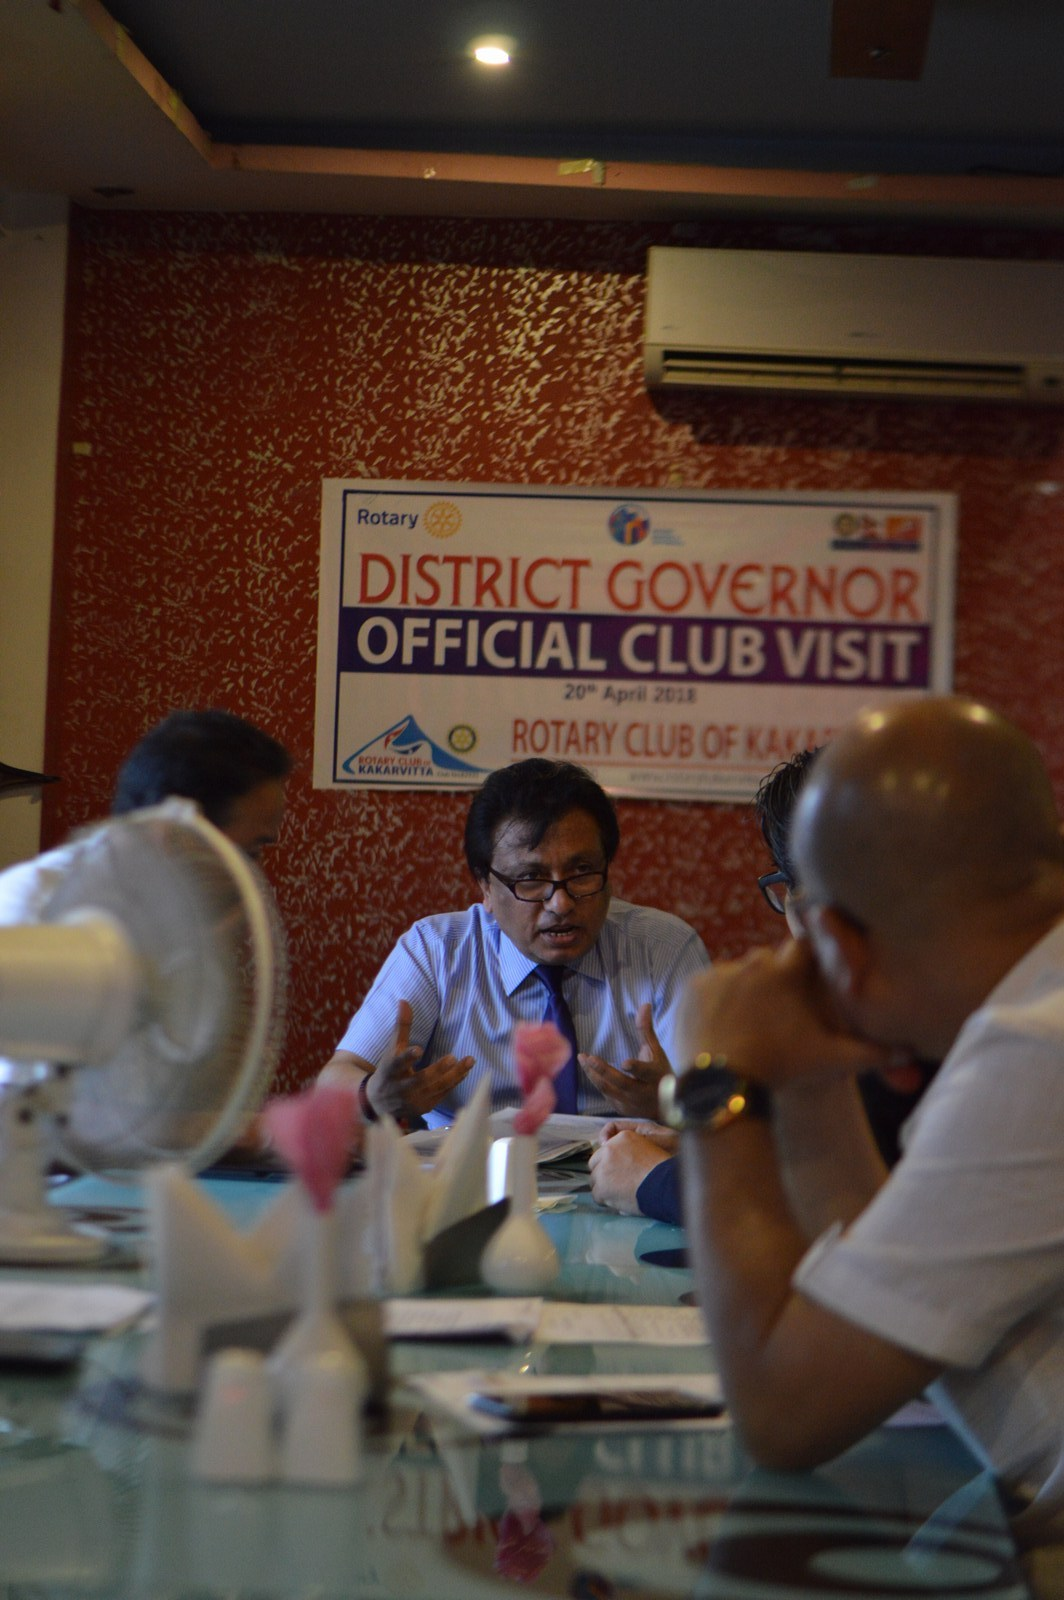 District-Governors-Official-Club-Visit-2017-18-Rotary-Club-of-Kakarvitta-5